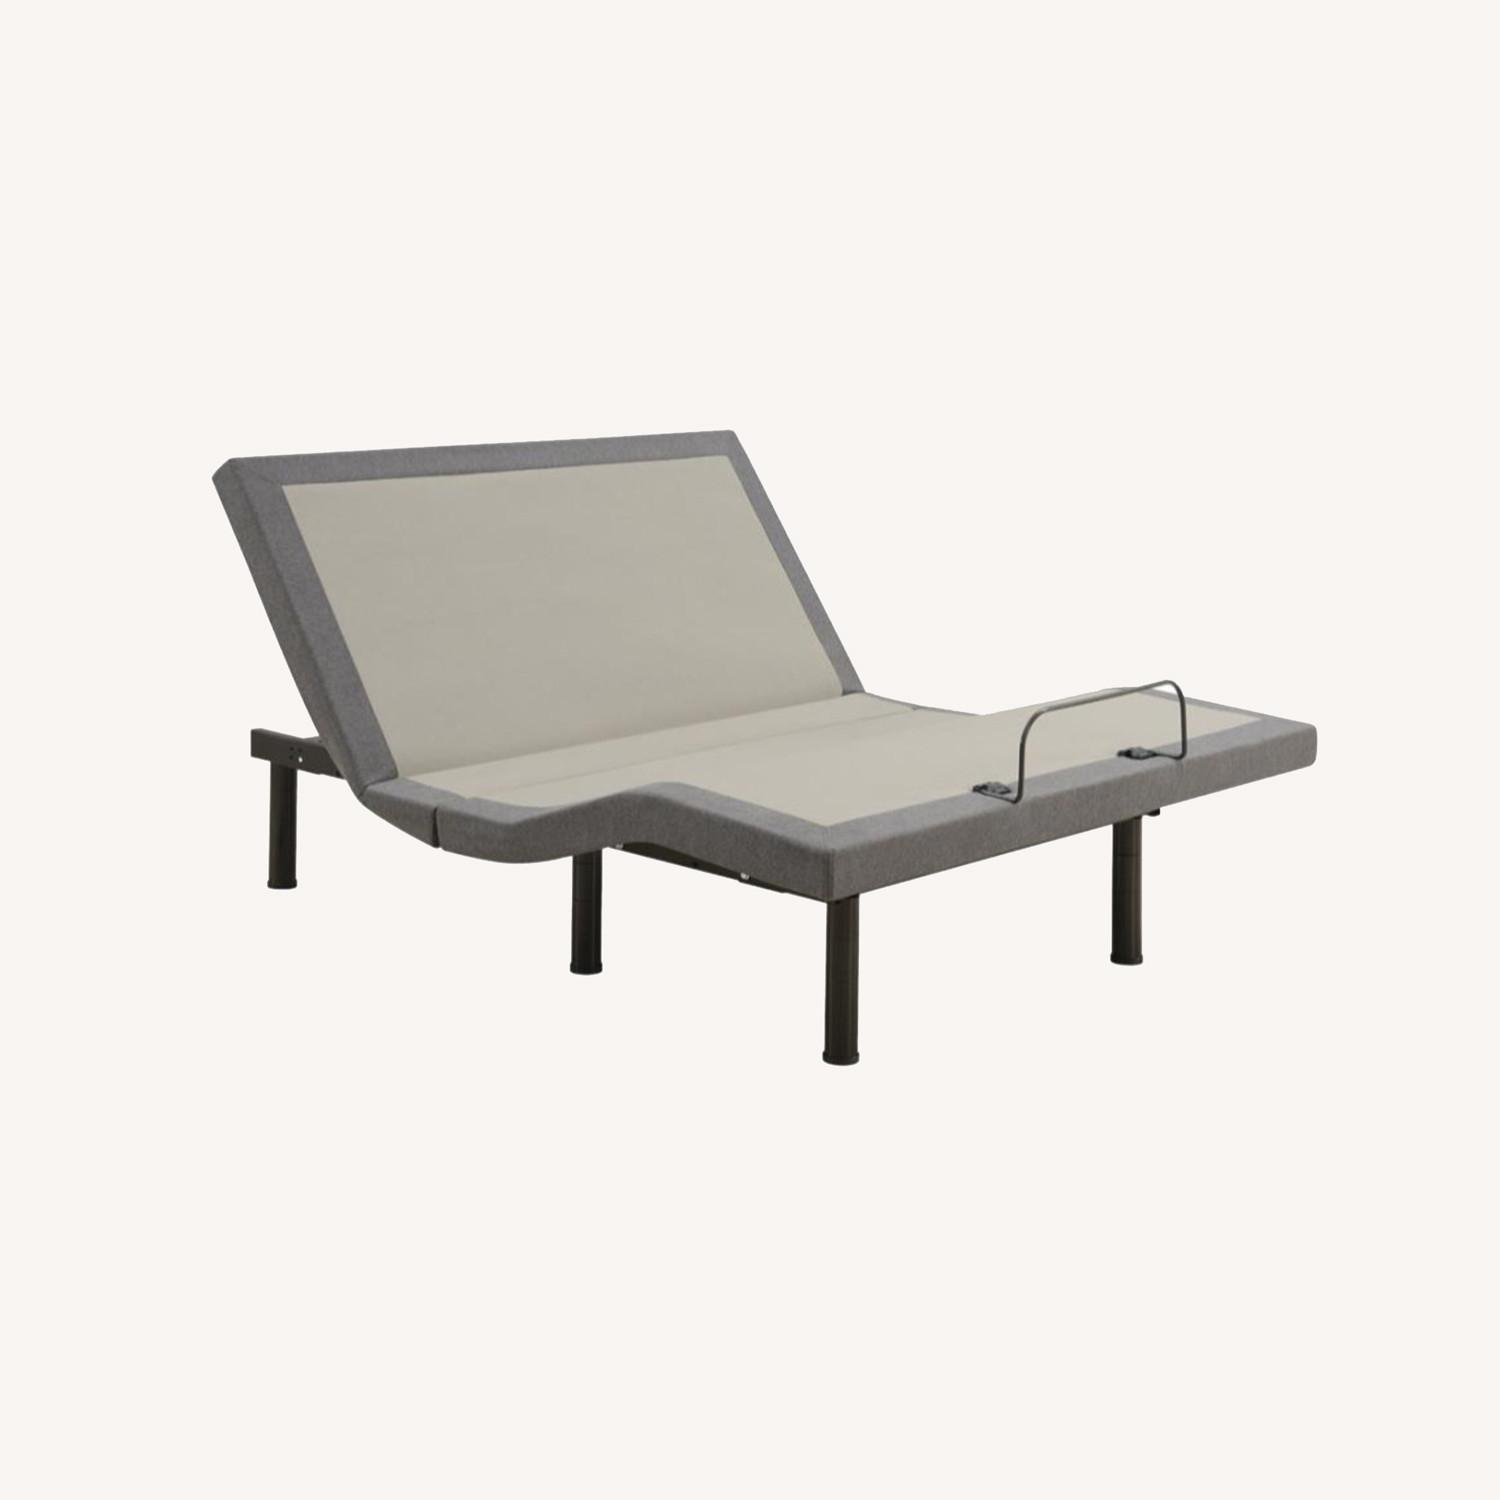 Queen Adjustable Bed Base In Grey Fabric Finish - image-16